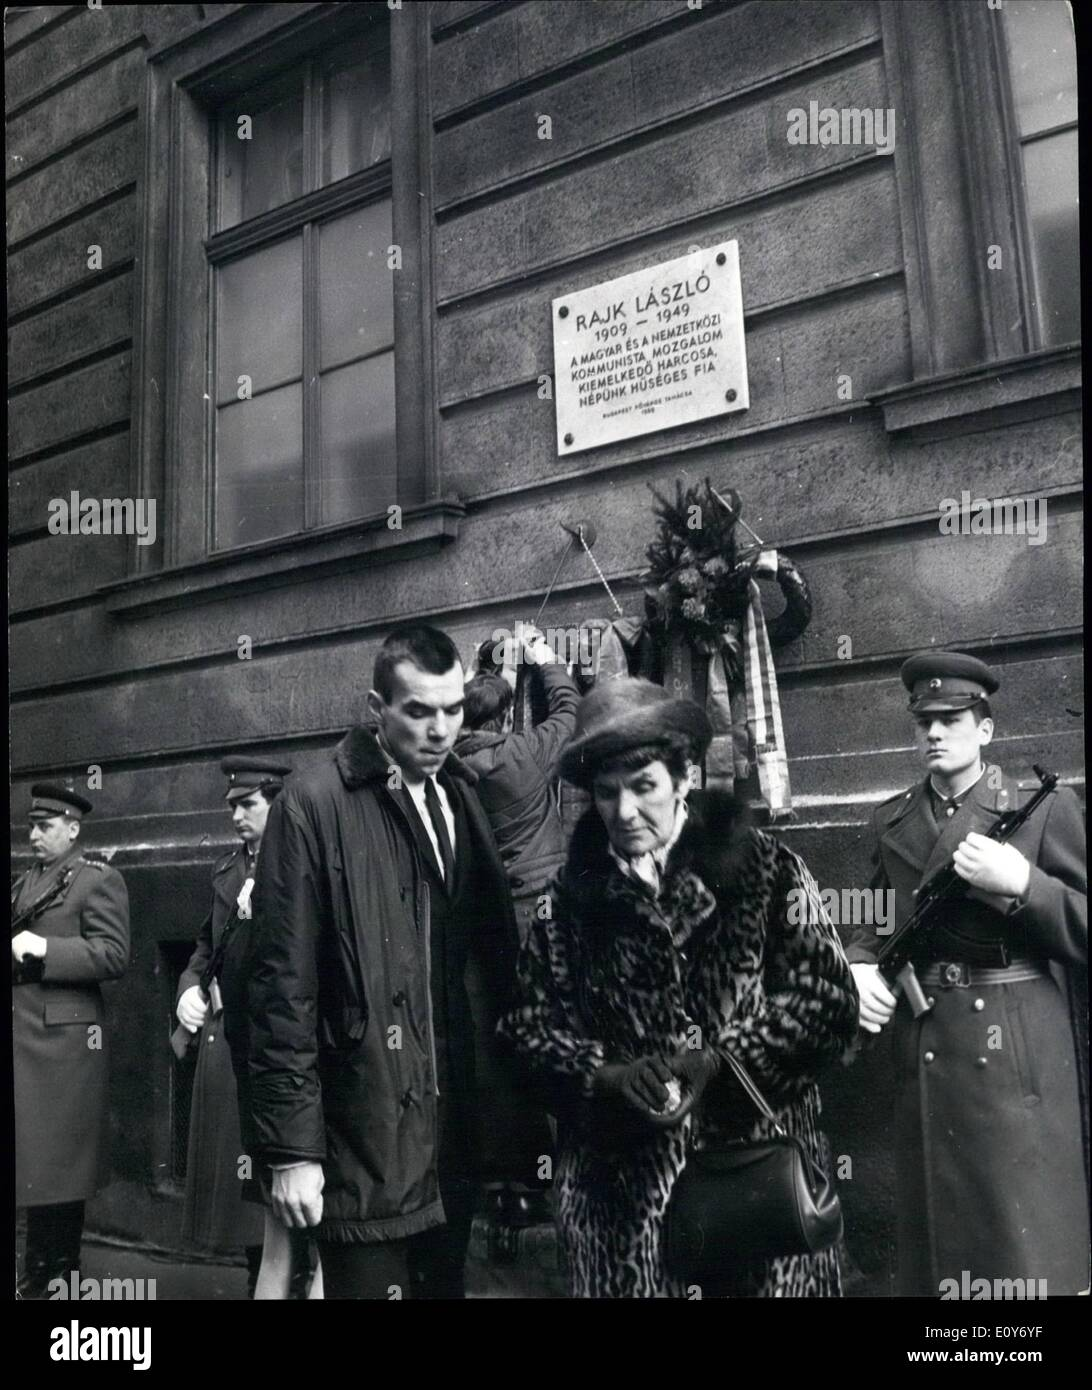 Mar. 03, 1969 - Plaque Unveiled In Budapest In Honour Of Laszlo Rajk, Outstanding Figure Of The Communist Movement: After a decision by the Budapest Municipal Council to rename Pnnonia Street in the 13th district of the capital Rajk Laszlo Street, on the 60th anniversary of the birth of Laszlo Rajk, a leading figure of the Hungarian and international communist movement, a plaque was unveiled in his memory. Laszlo Rajk was executed in 1949 after trial and conviction on the basis of fabricated charges during the period of the personality cult - Stock Image